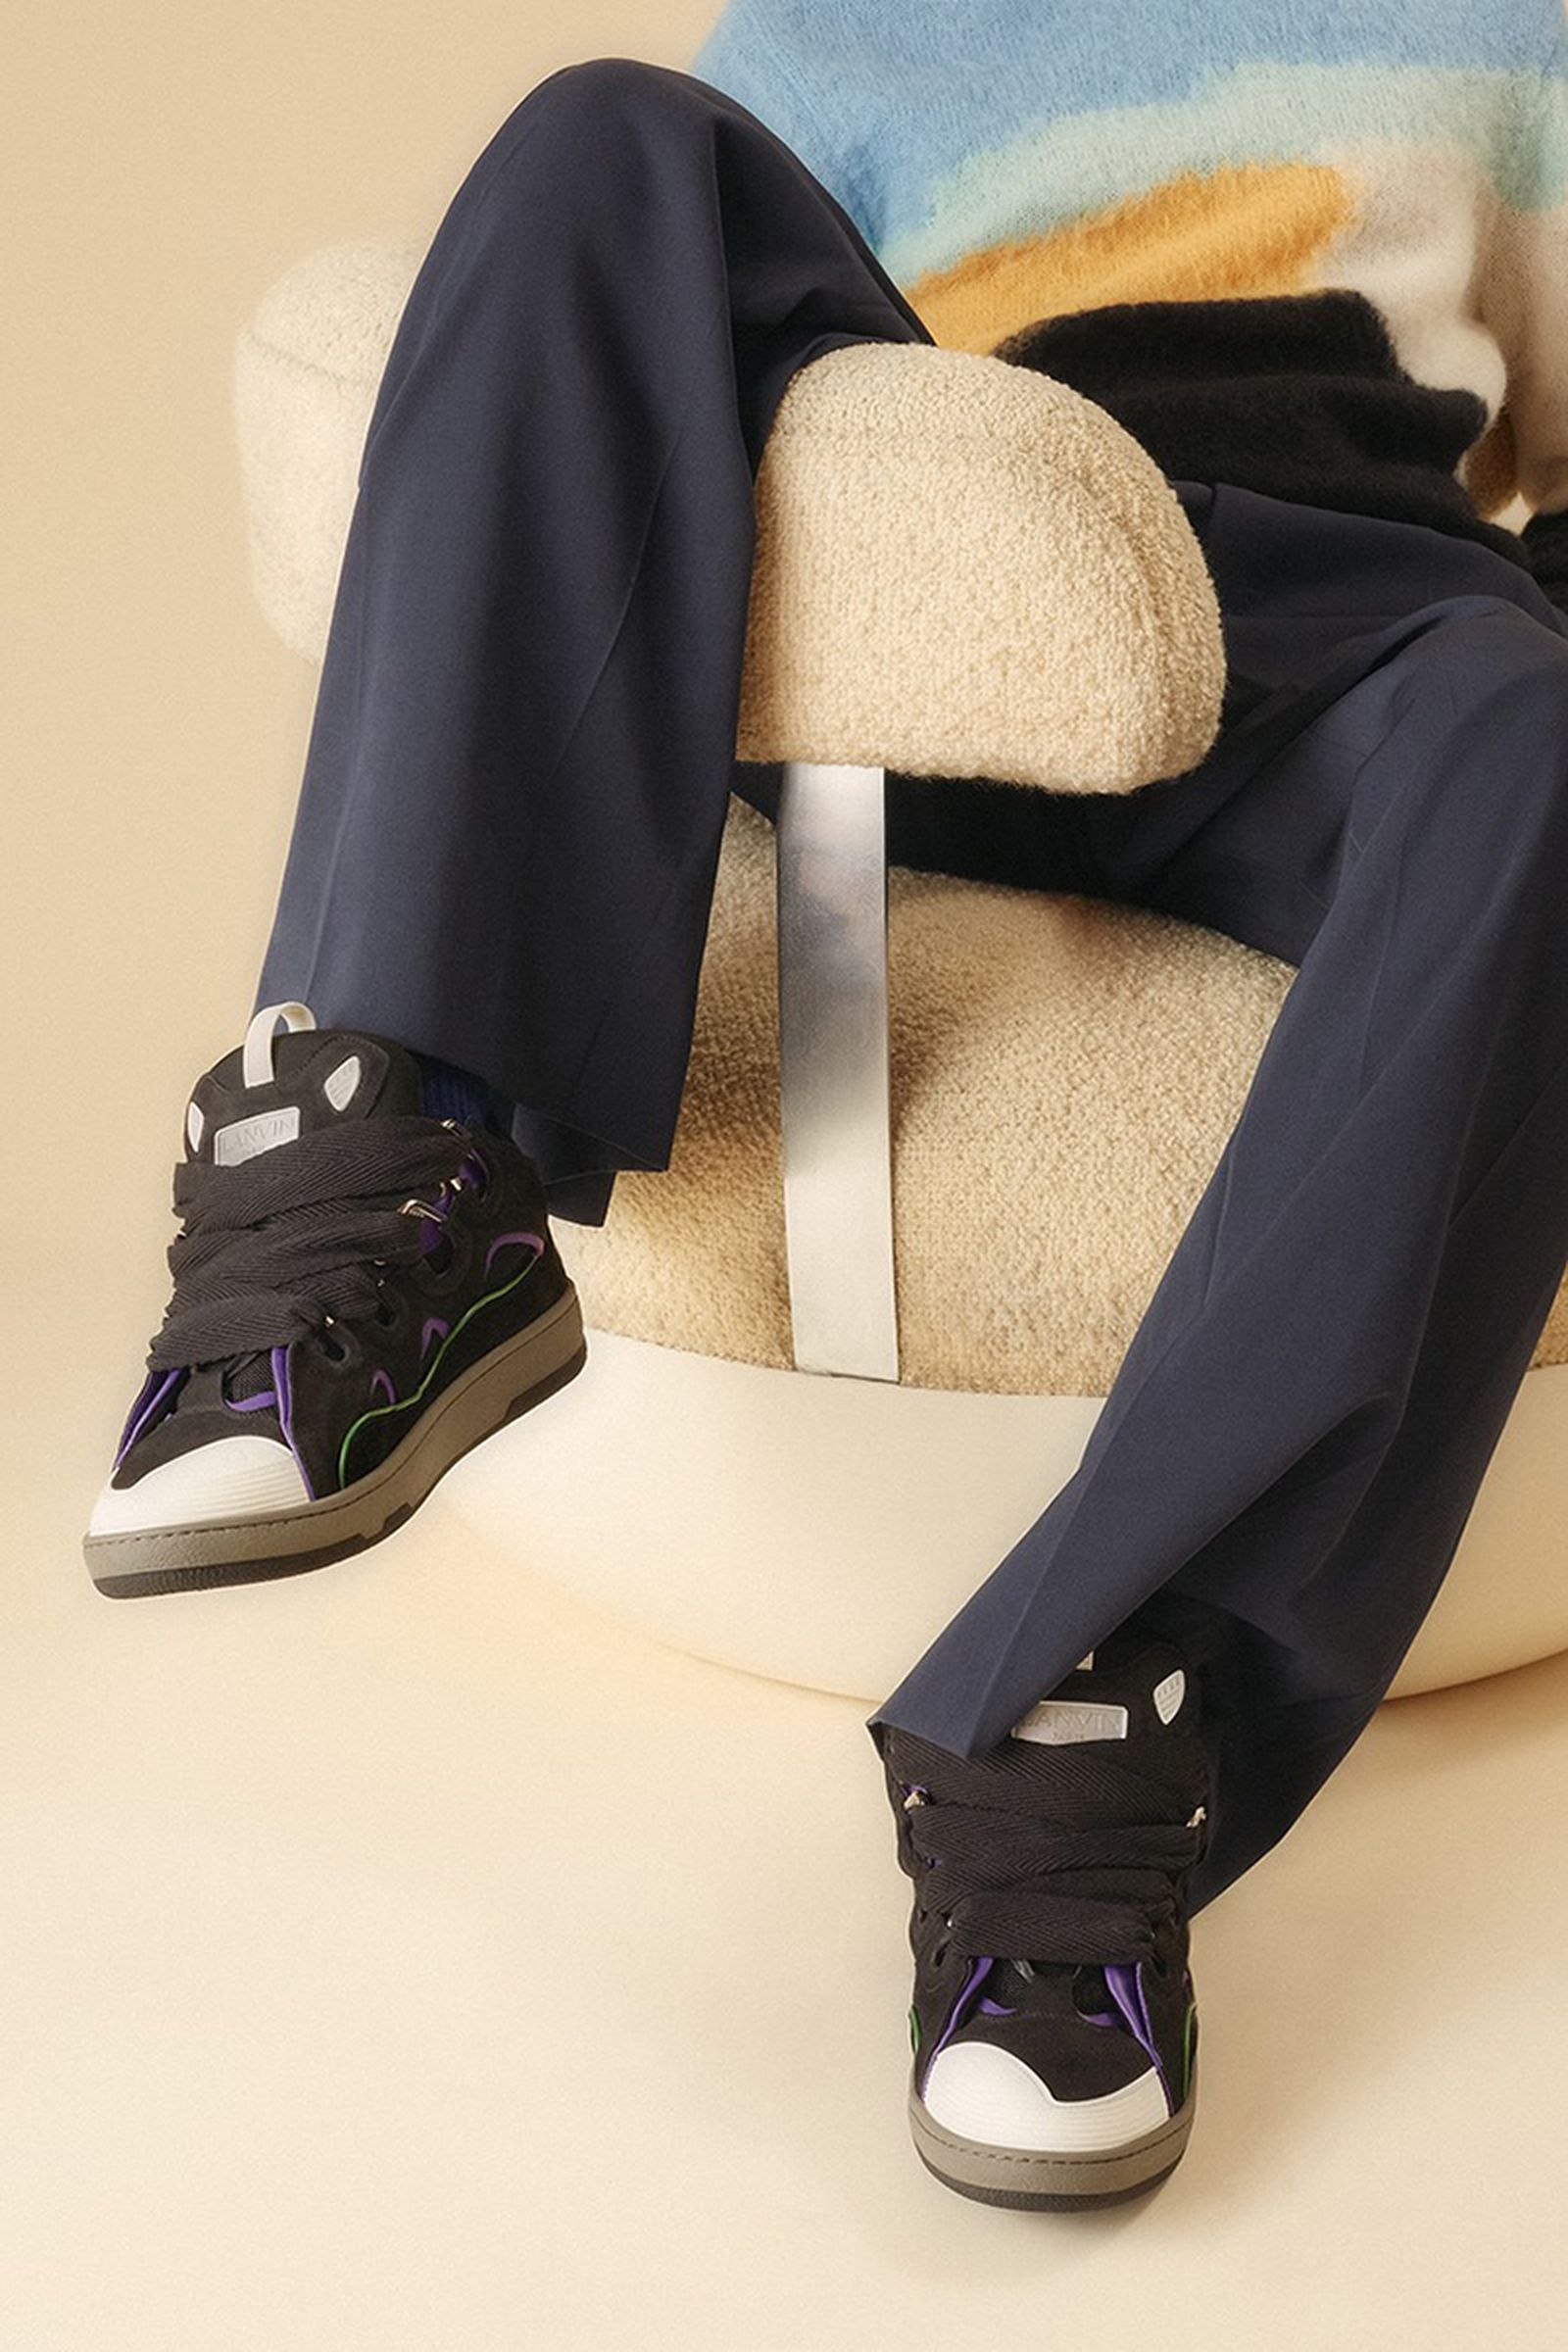 lanvin-leather-curb-spring-colorways-release-date-price-05